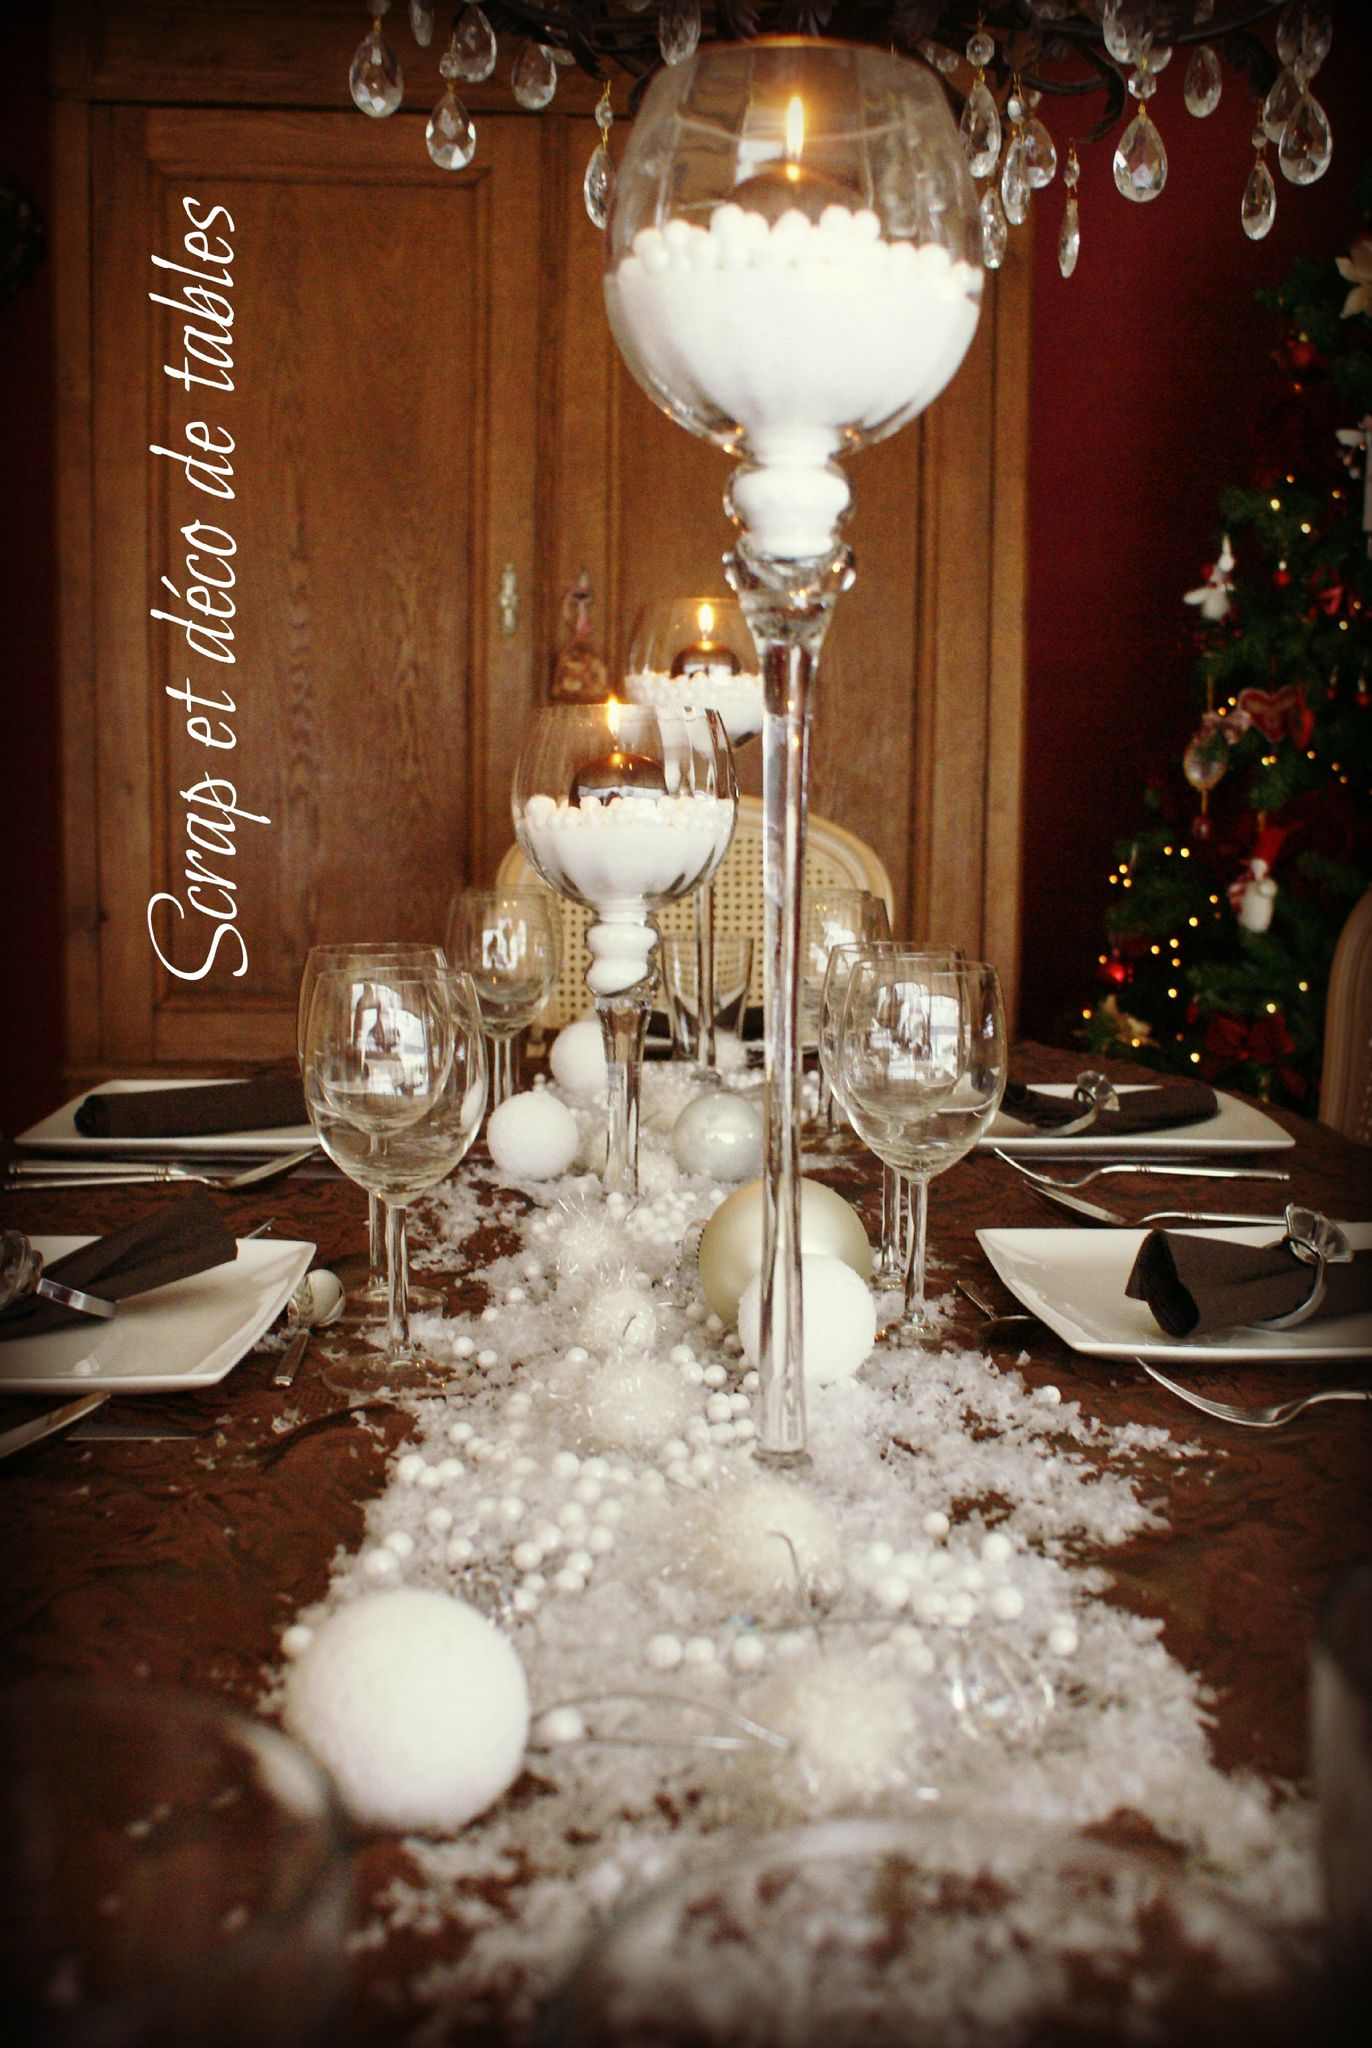 Deco de tables de no l en brun scrap et d co de tables - Decoration de table de noel ...